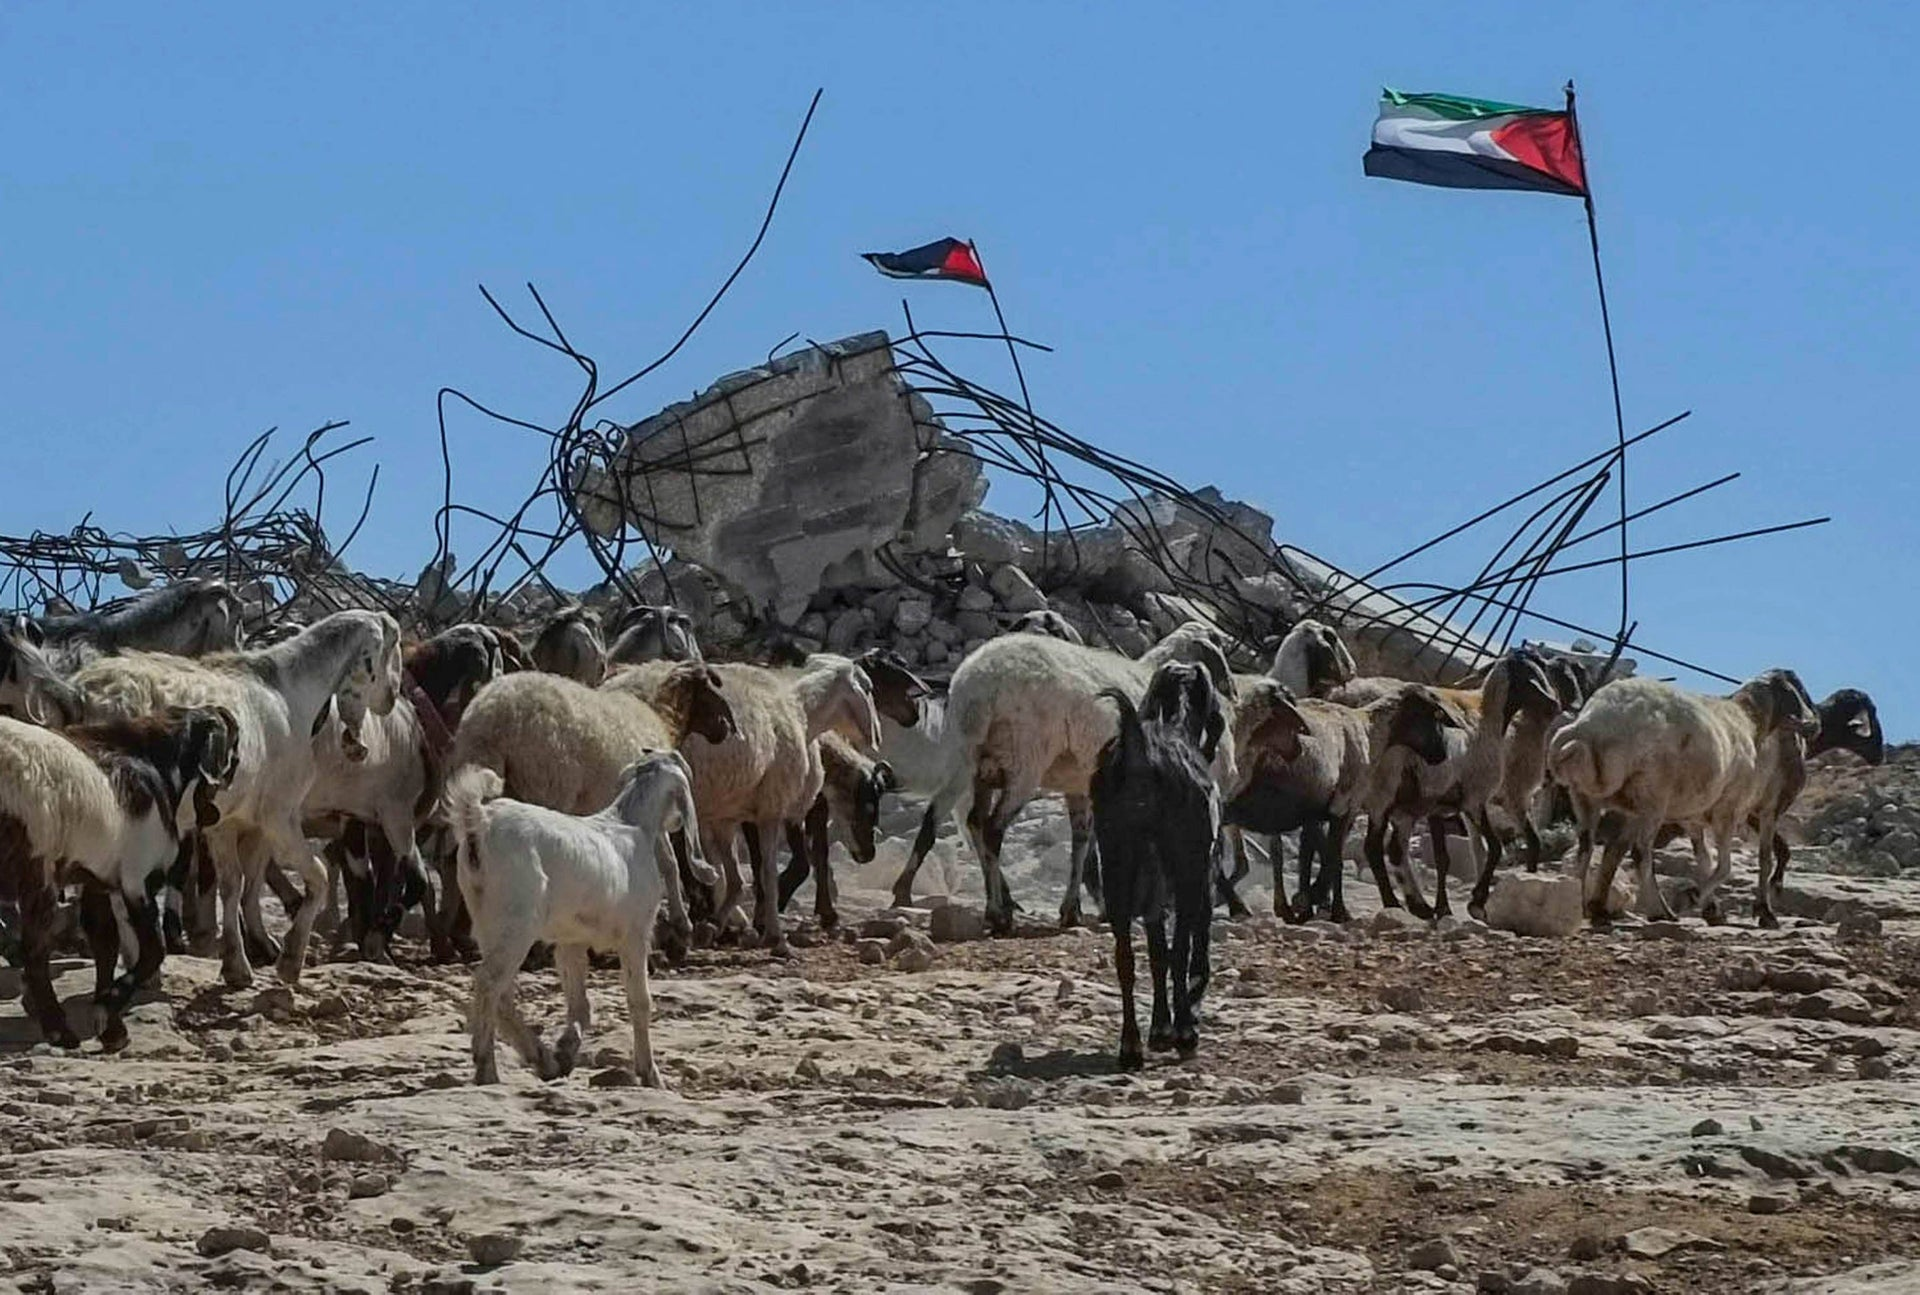 Sheep grazing in the South Hebron Hills, West Bank.